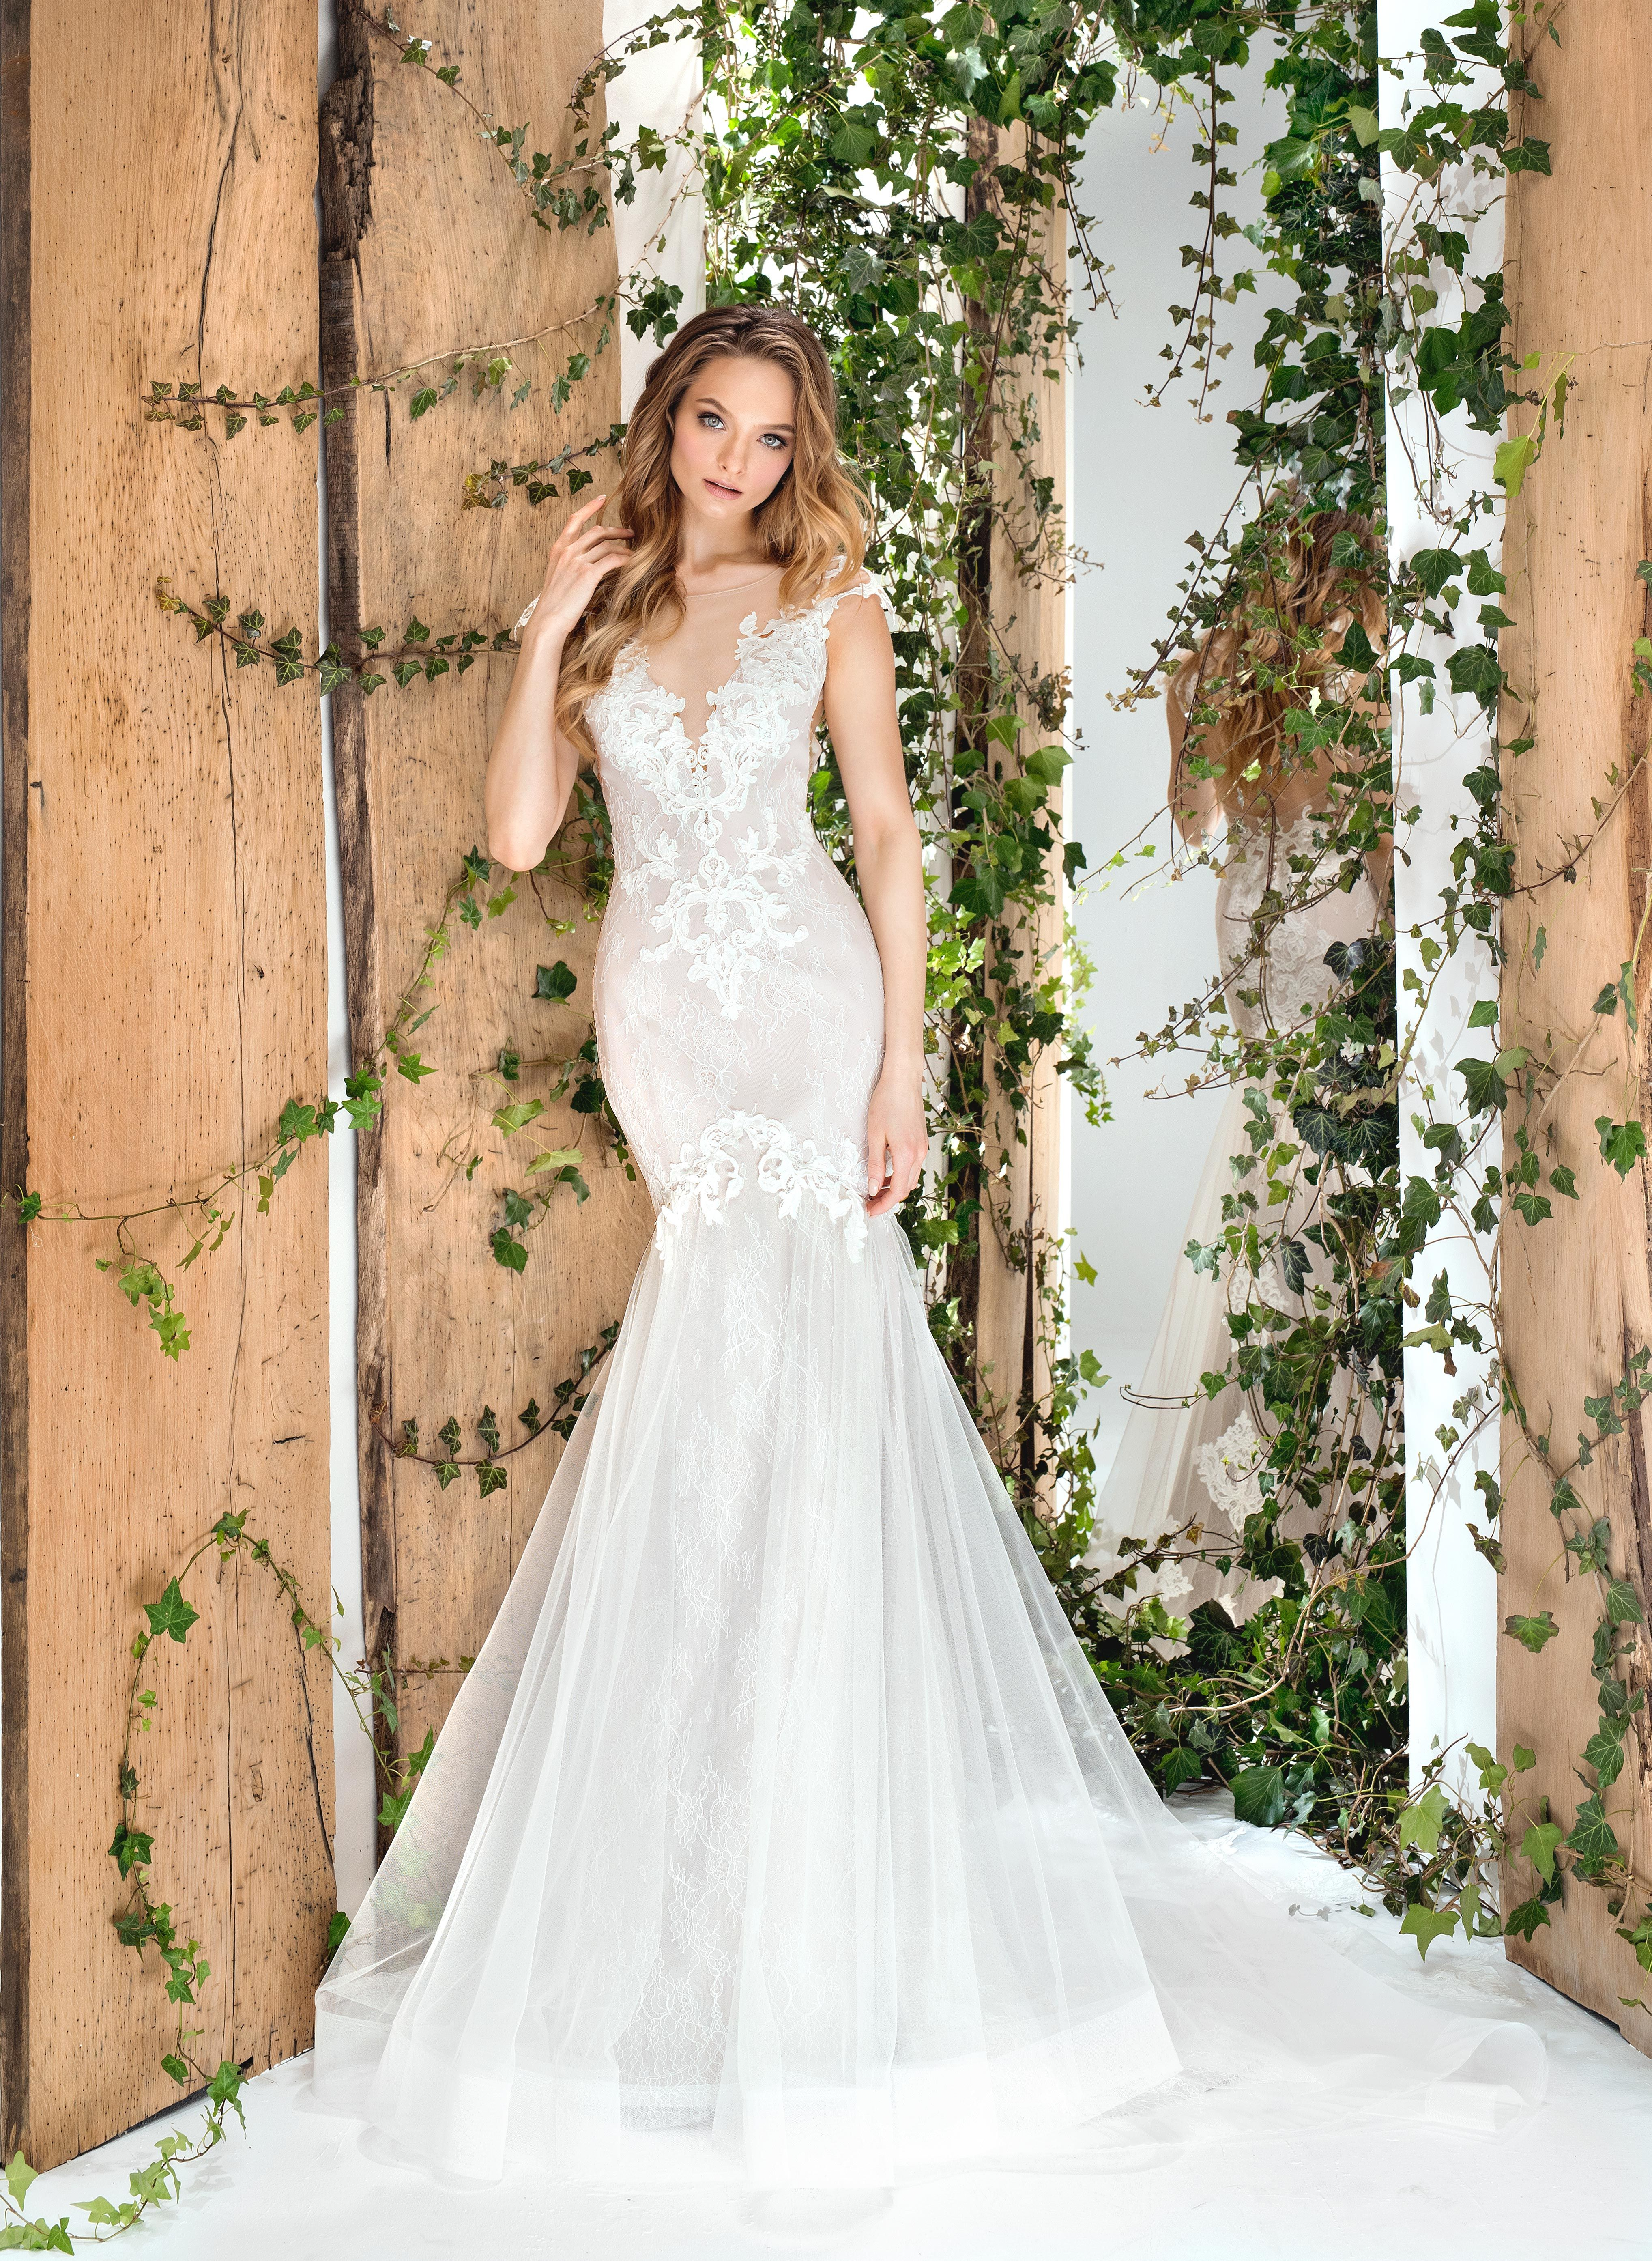 A Fitted Mermaid Style Wedding Dress With Lace Embroidery And Soft Sheer Tulle Bottom 1810 From The 2018 Wonderland Collection: Wedding Dresses Bottom D At Reisefeber.org